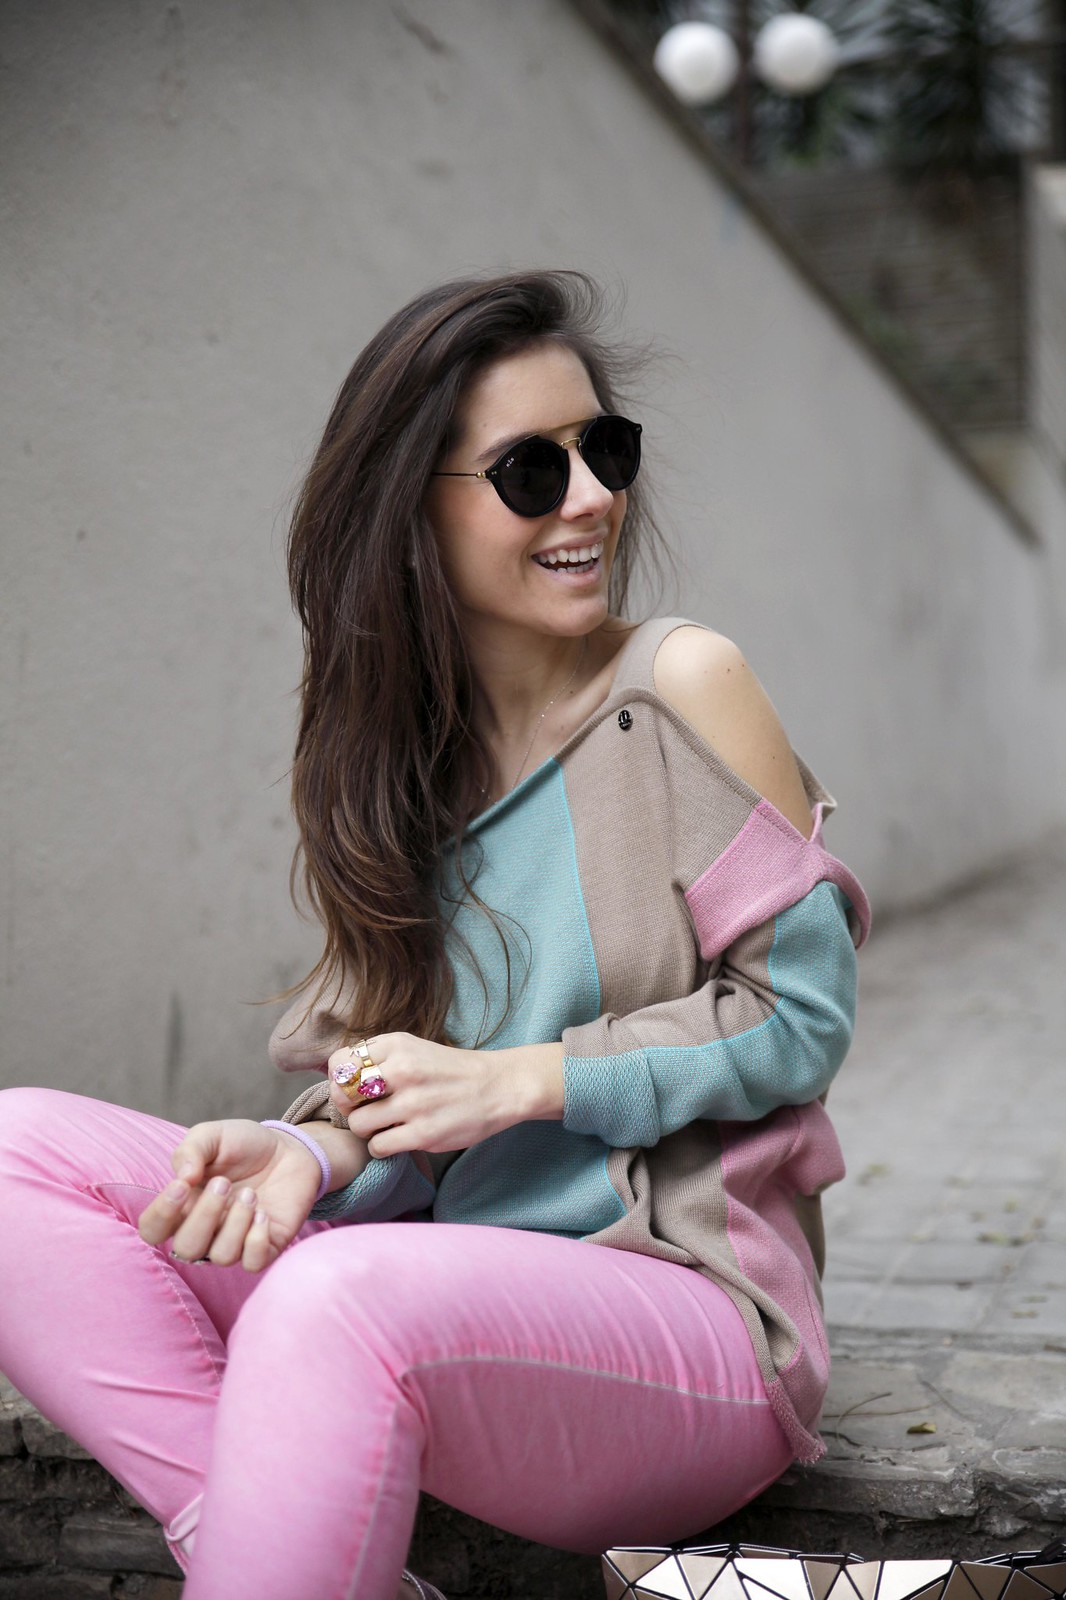 013_RÜGA_portugal_brand_ambassador_fashion_blogger_spain_theguestgirl_laura_santolaria_influencer_barcelona